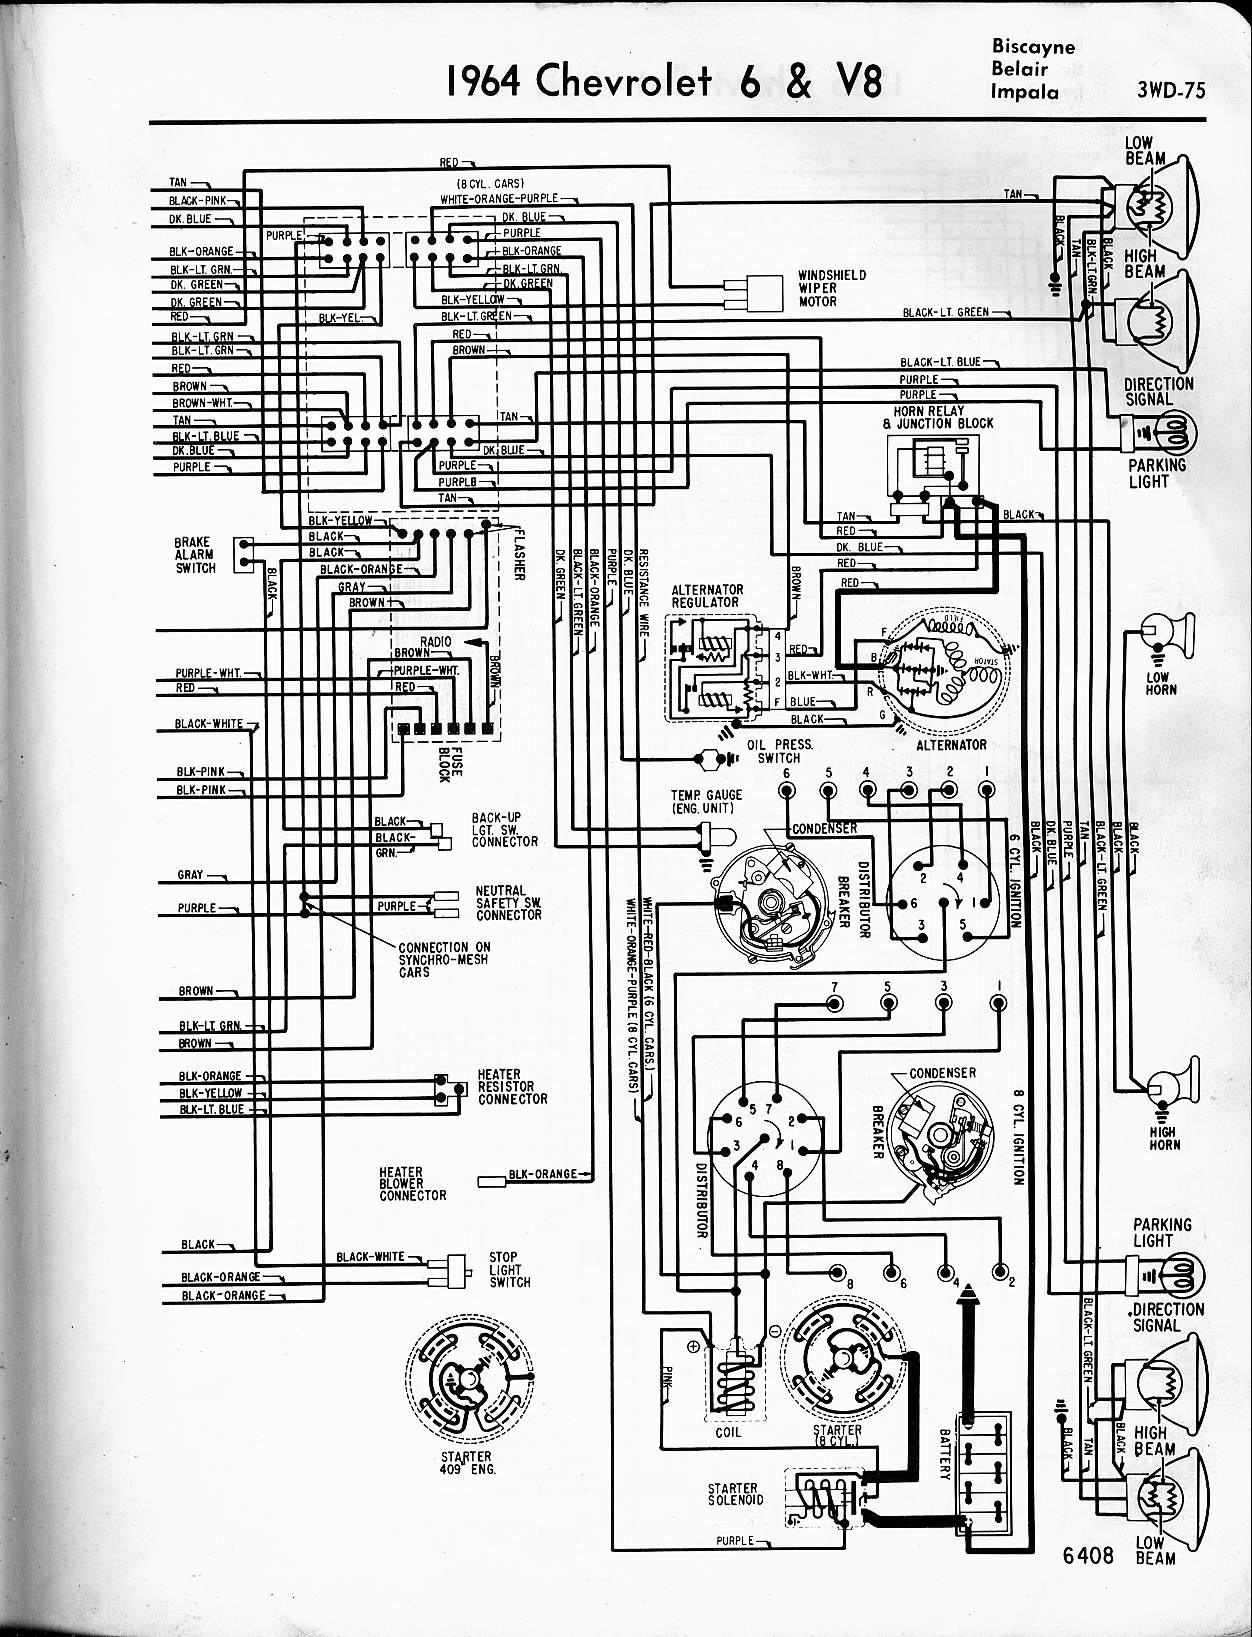 MWireChev64_3WD 075 1964 impala wiring diagram 1964 impala wiring diagram rear breaks 2001 chevy malibu ignition wiring diagram at reclaimingppi.co